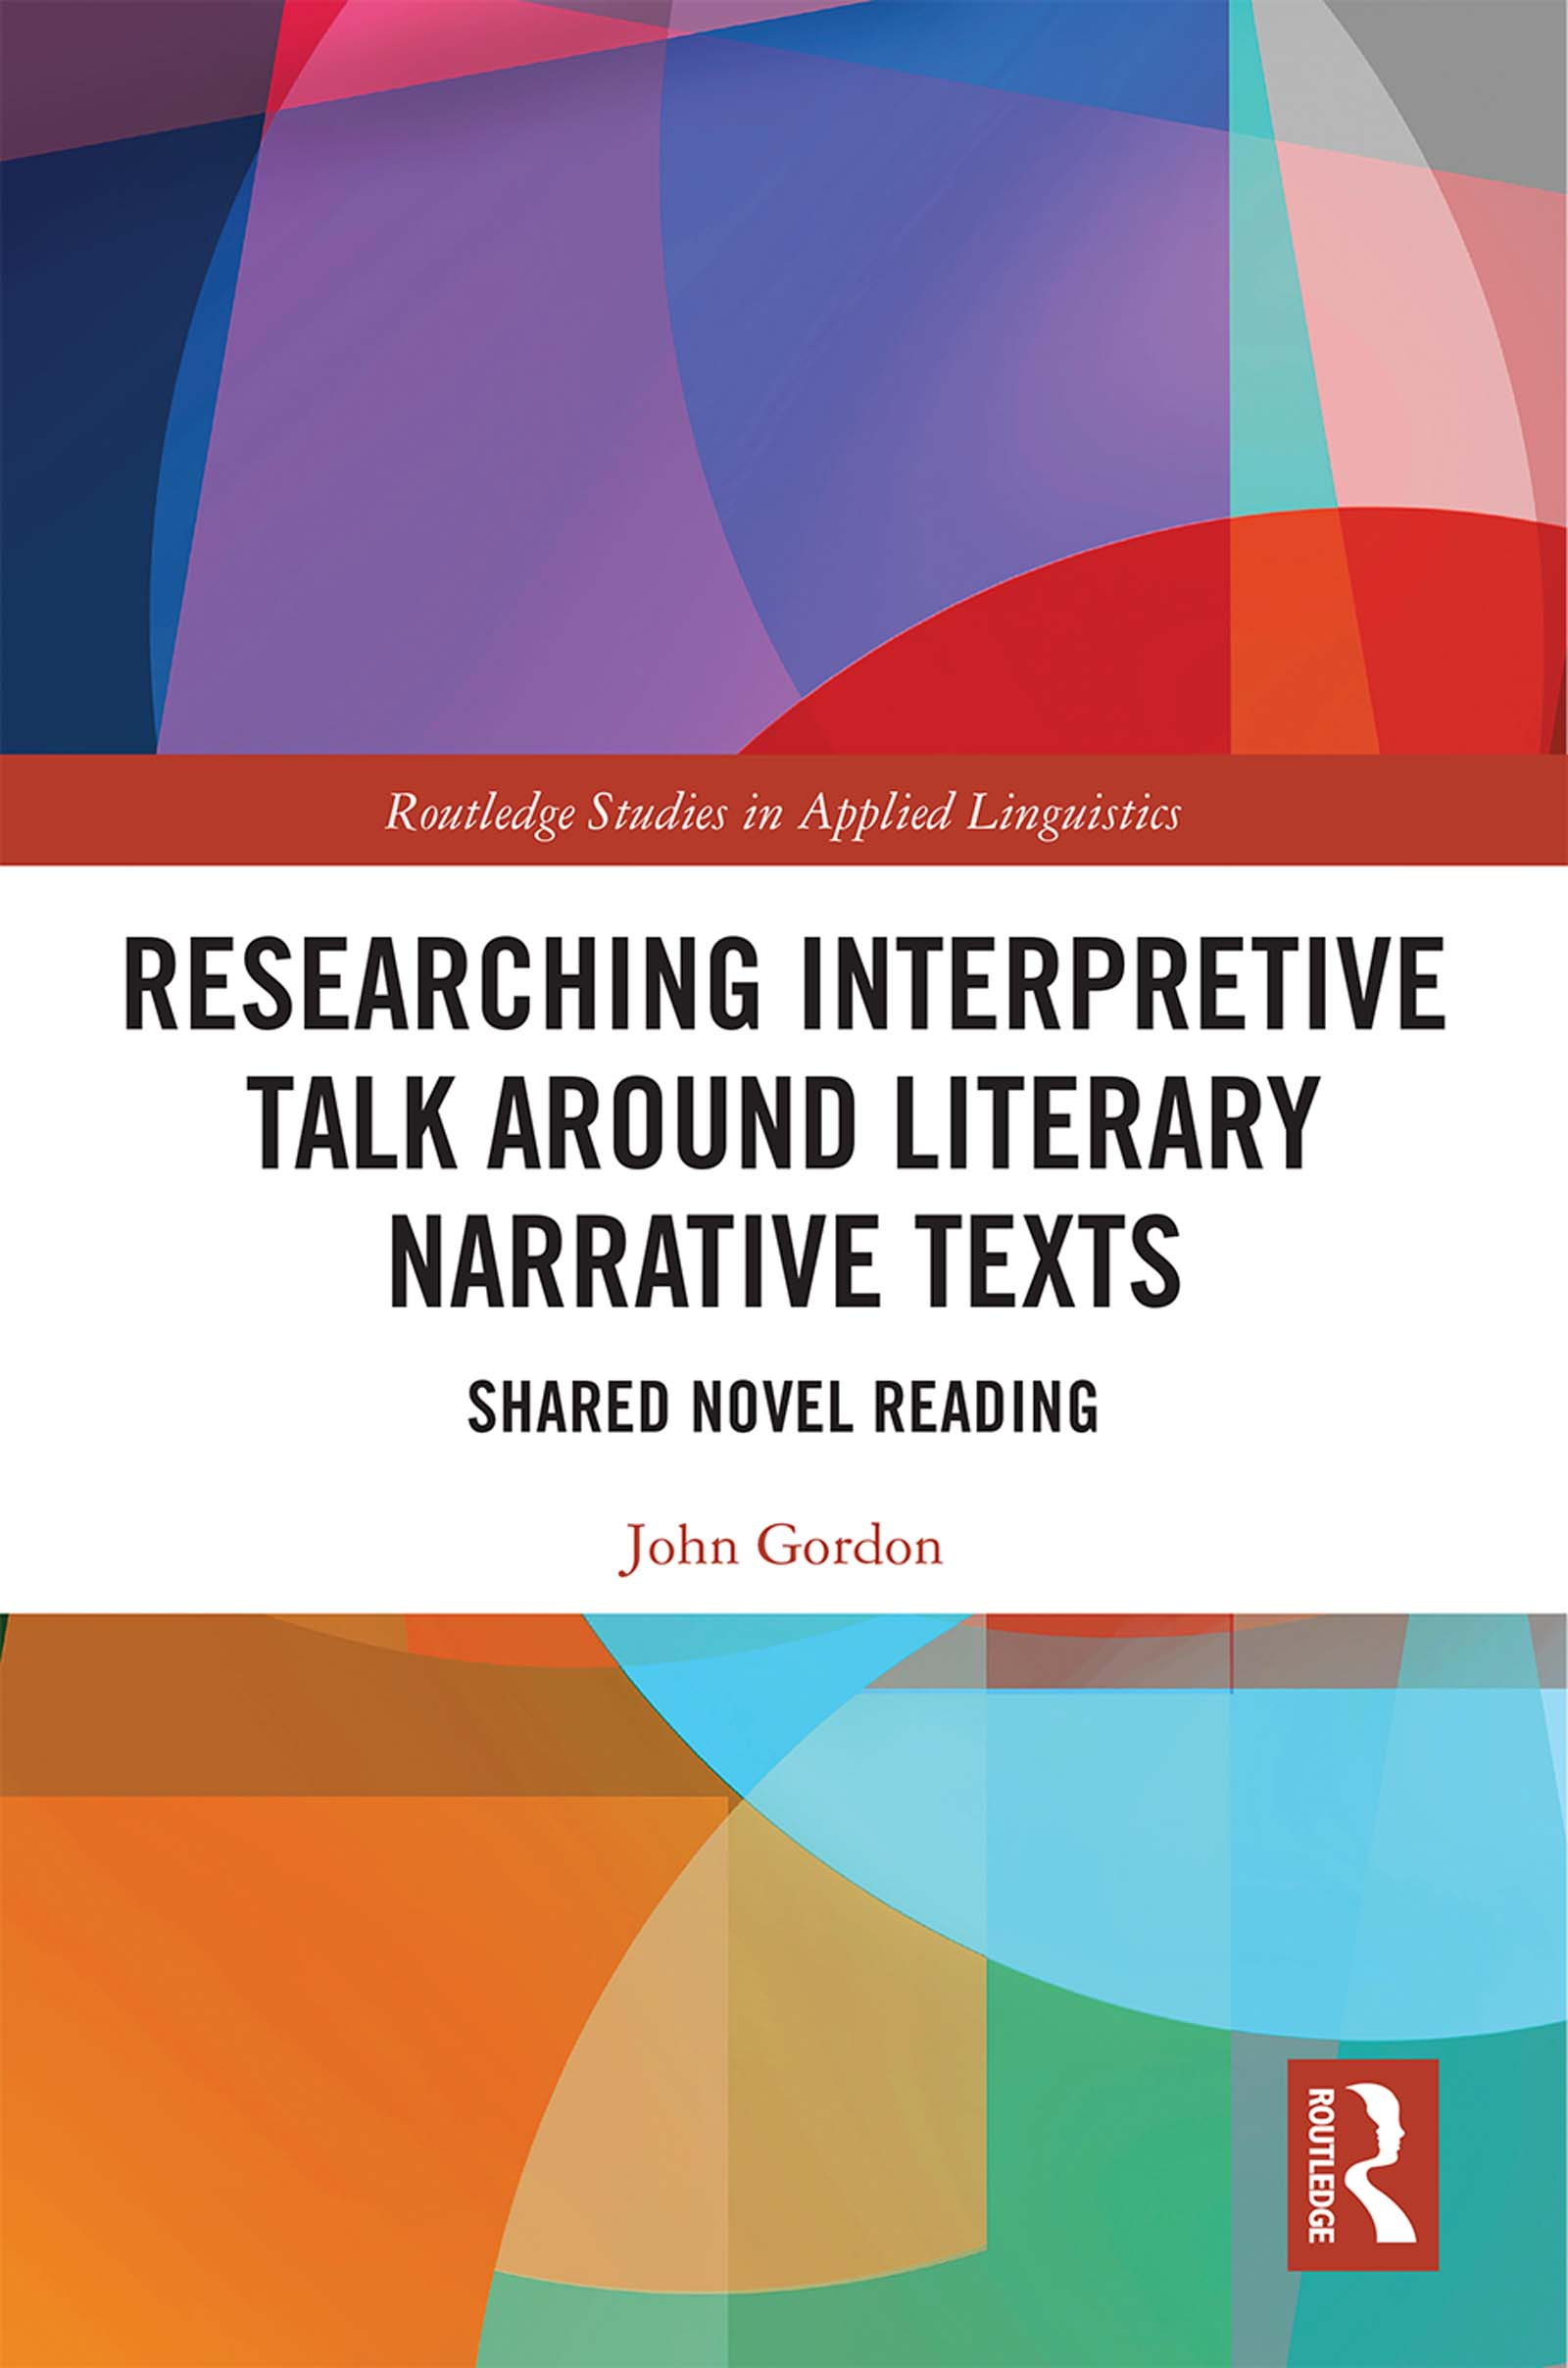 Literary Study and Shared Novel Reading in Education